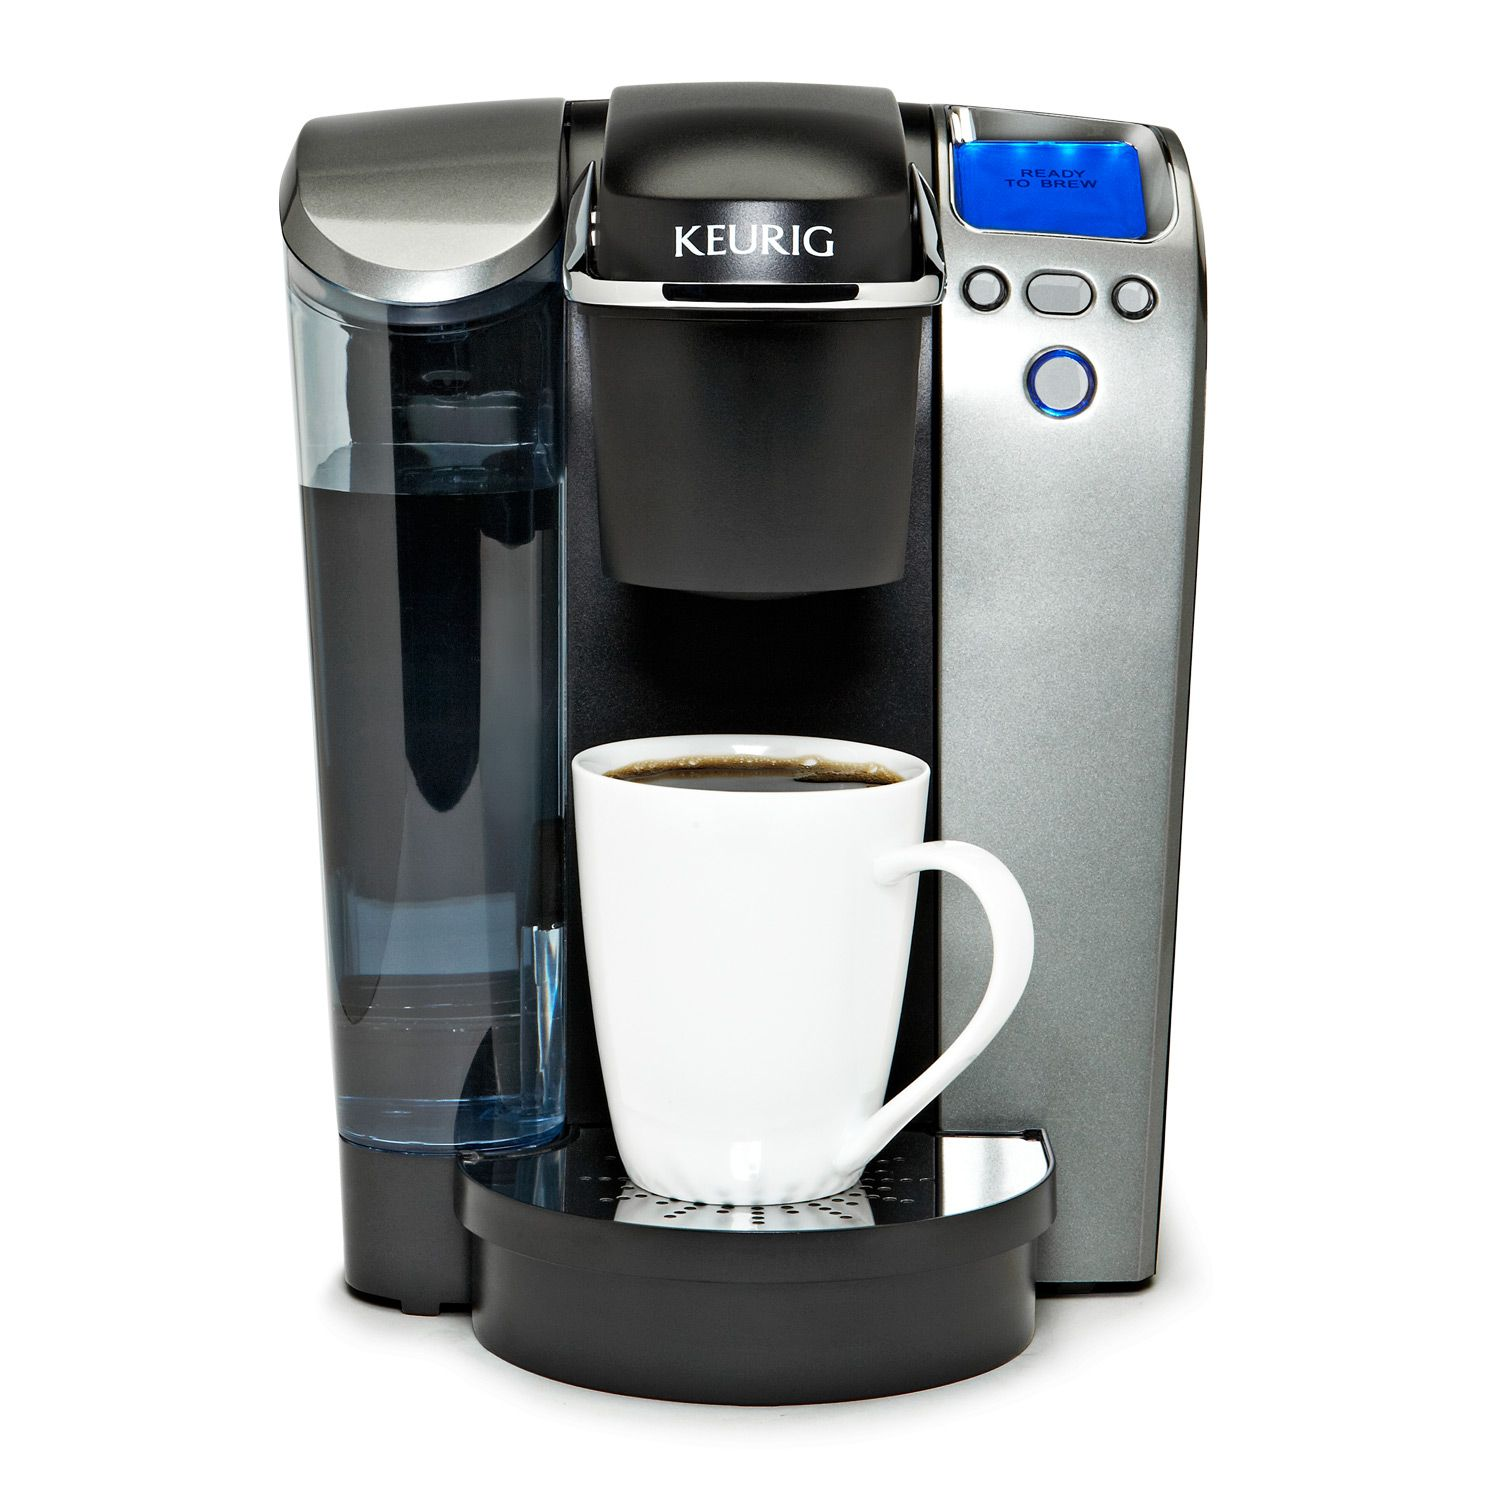 a wedding registry favorite — Keurig, Inc. singleserve